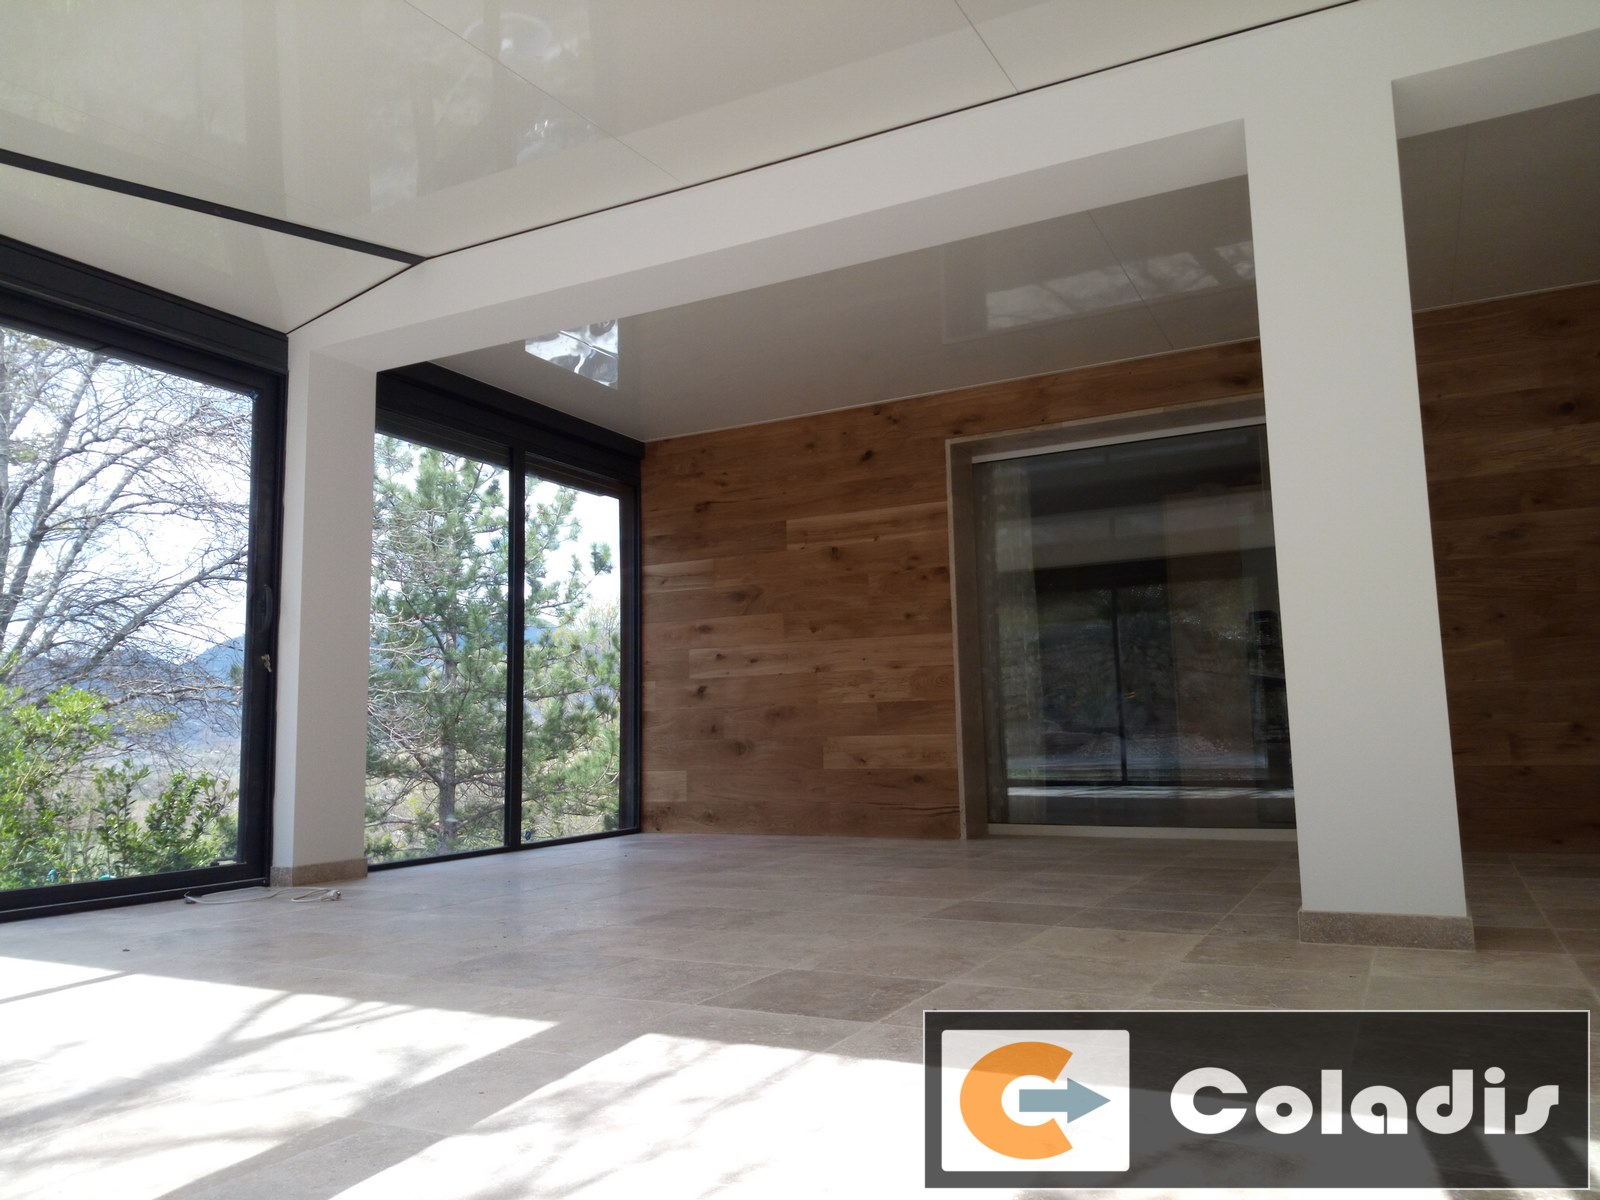 Un am nagement int rieur de v randa sur mesure soubes 34 coladis - Amenagement veranda interieur ...